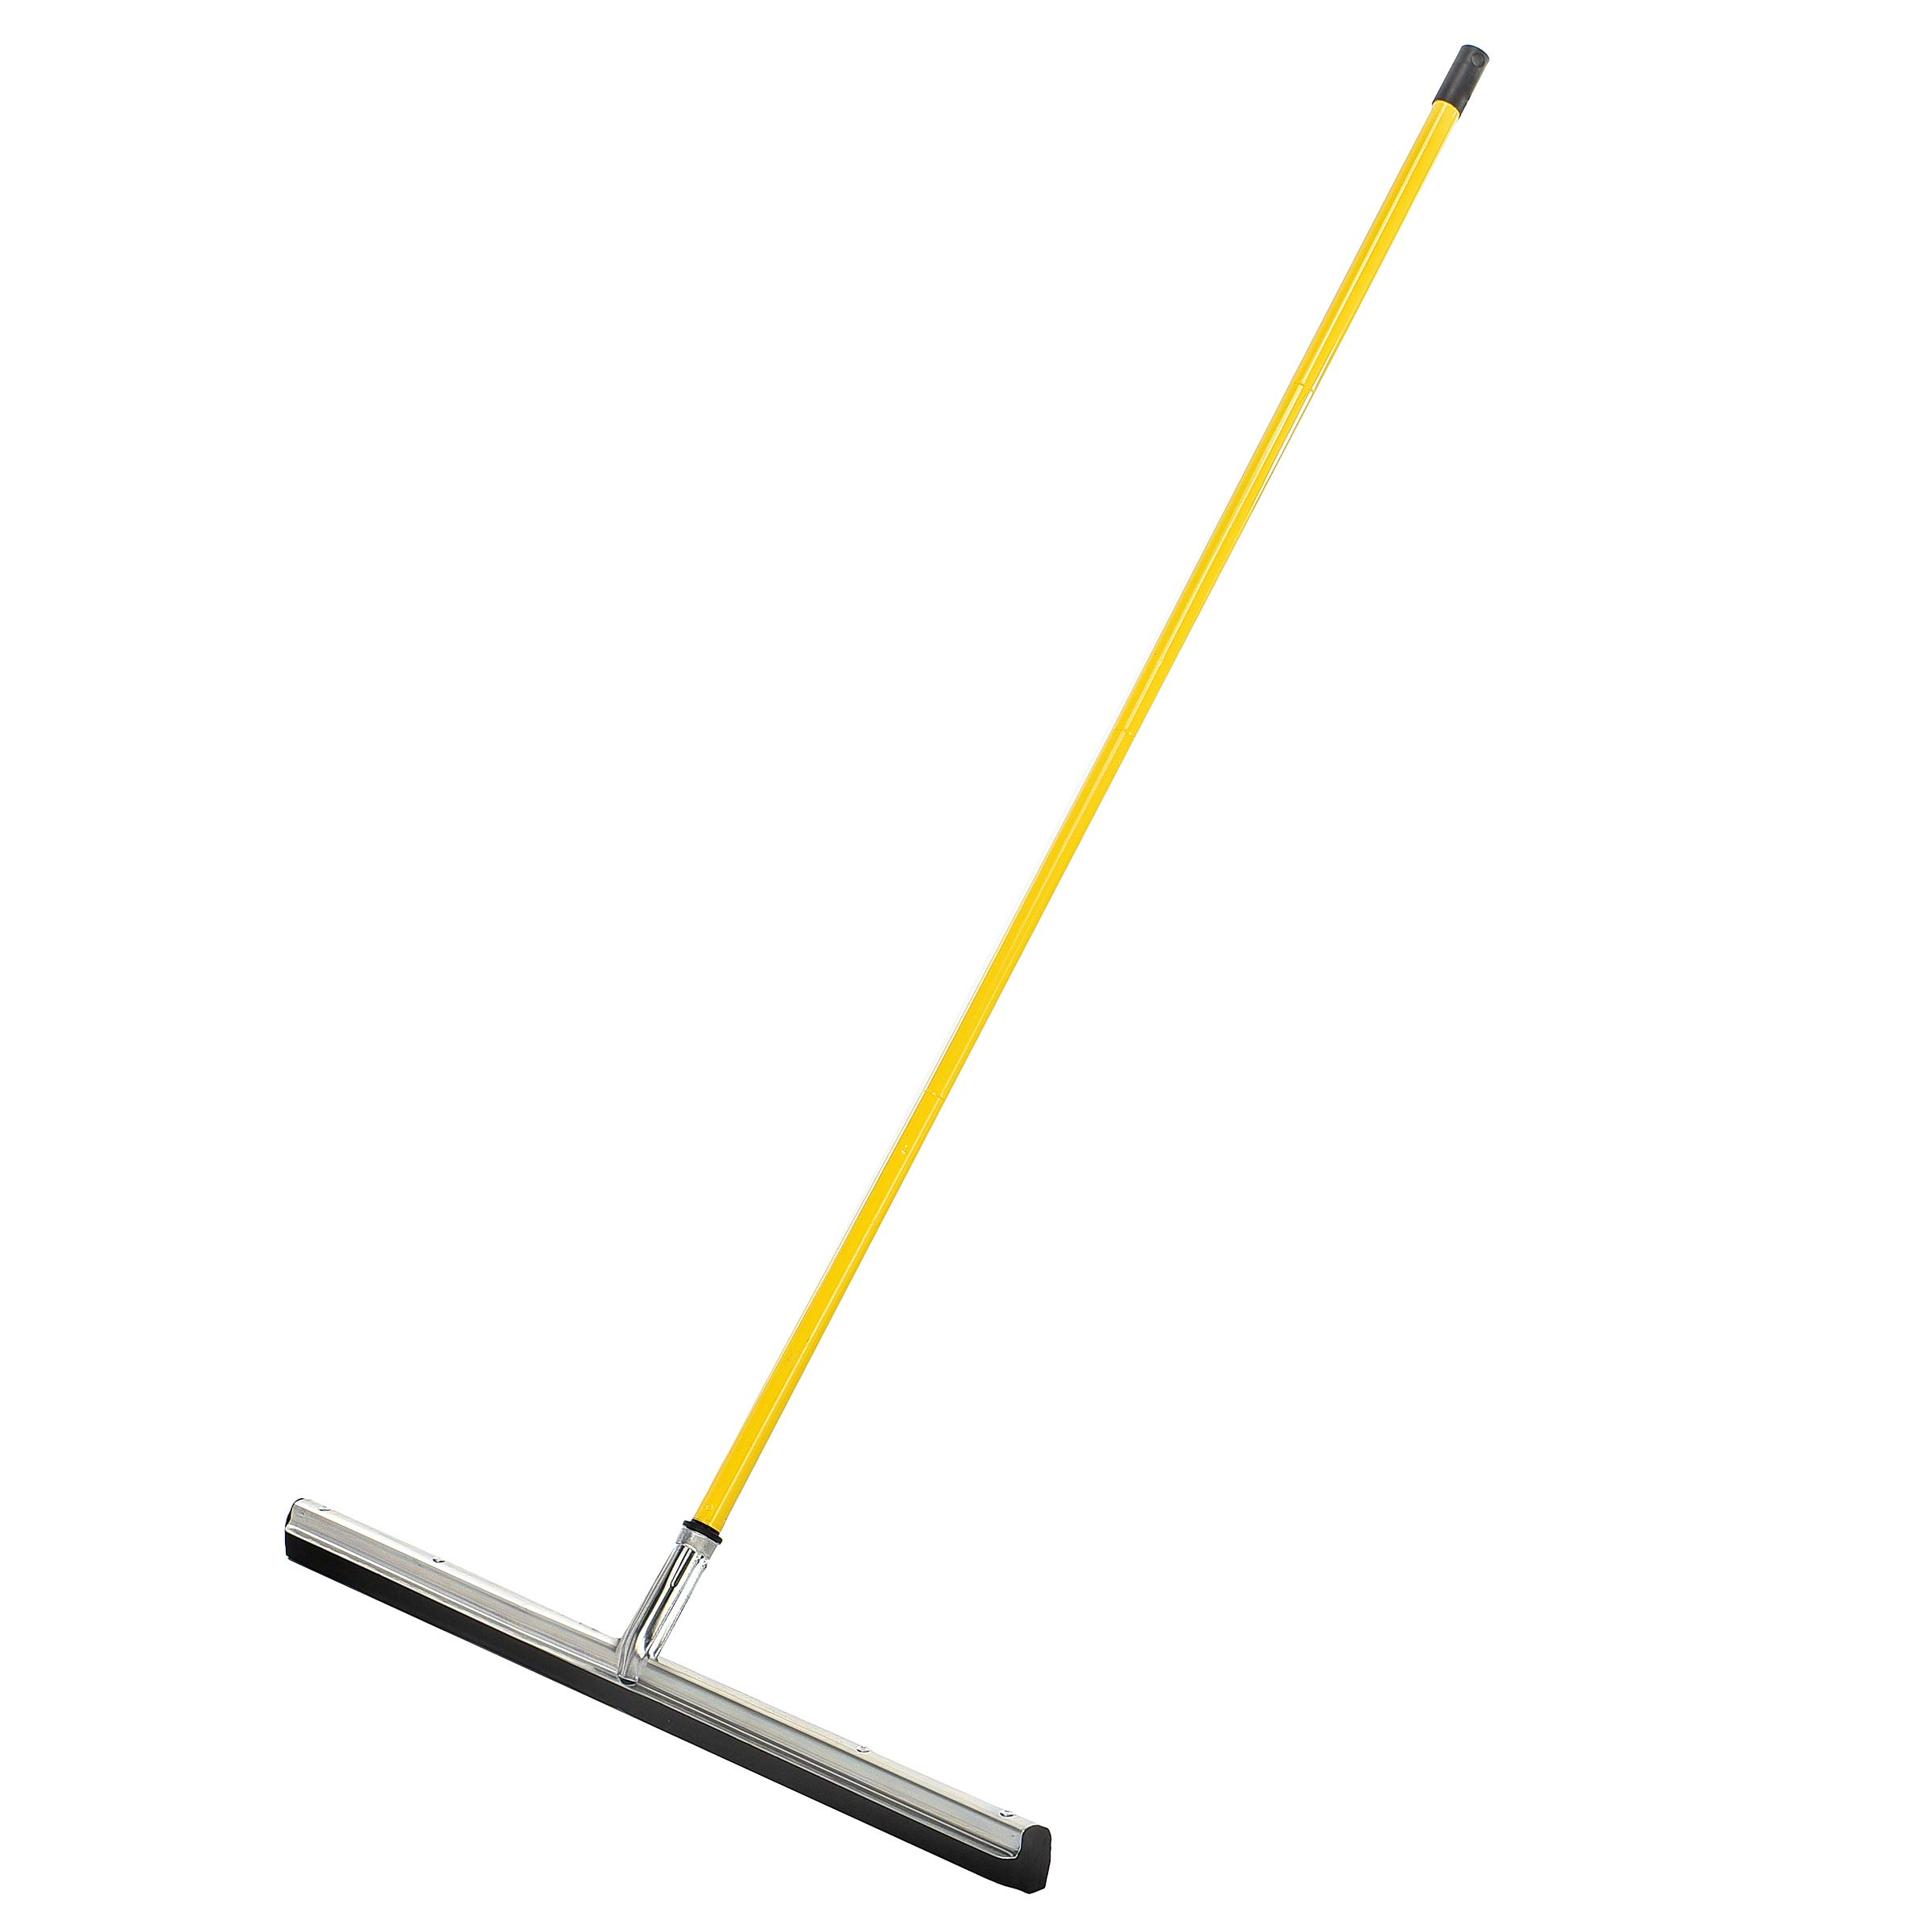 Alpine Industries Heavy-Duty Dual Moss Floor Squeegee with 50 Handle - Industrial Grade Soft Foam Replacement Head for Cleaning Wet & Dry Concrete, Wood & Tile Floors (30 in)